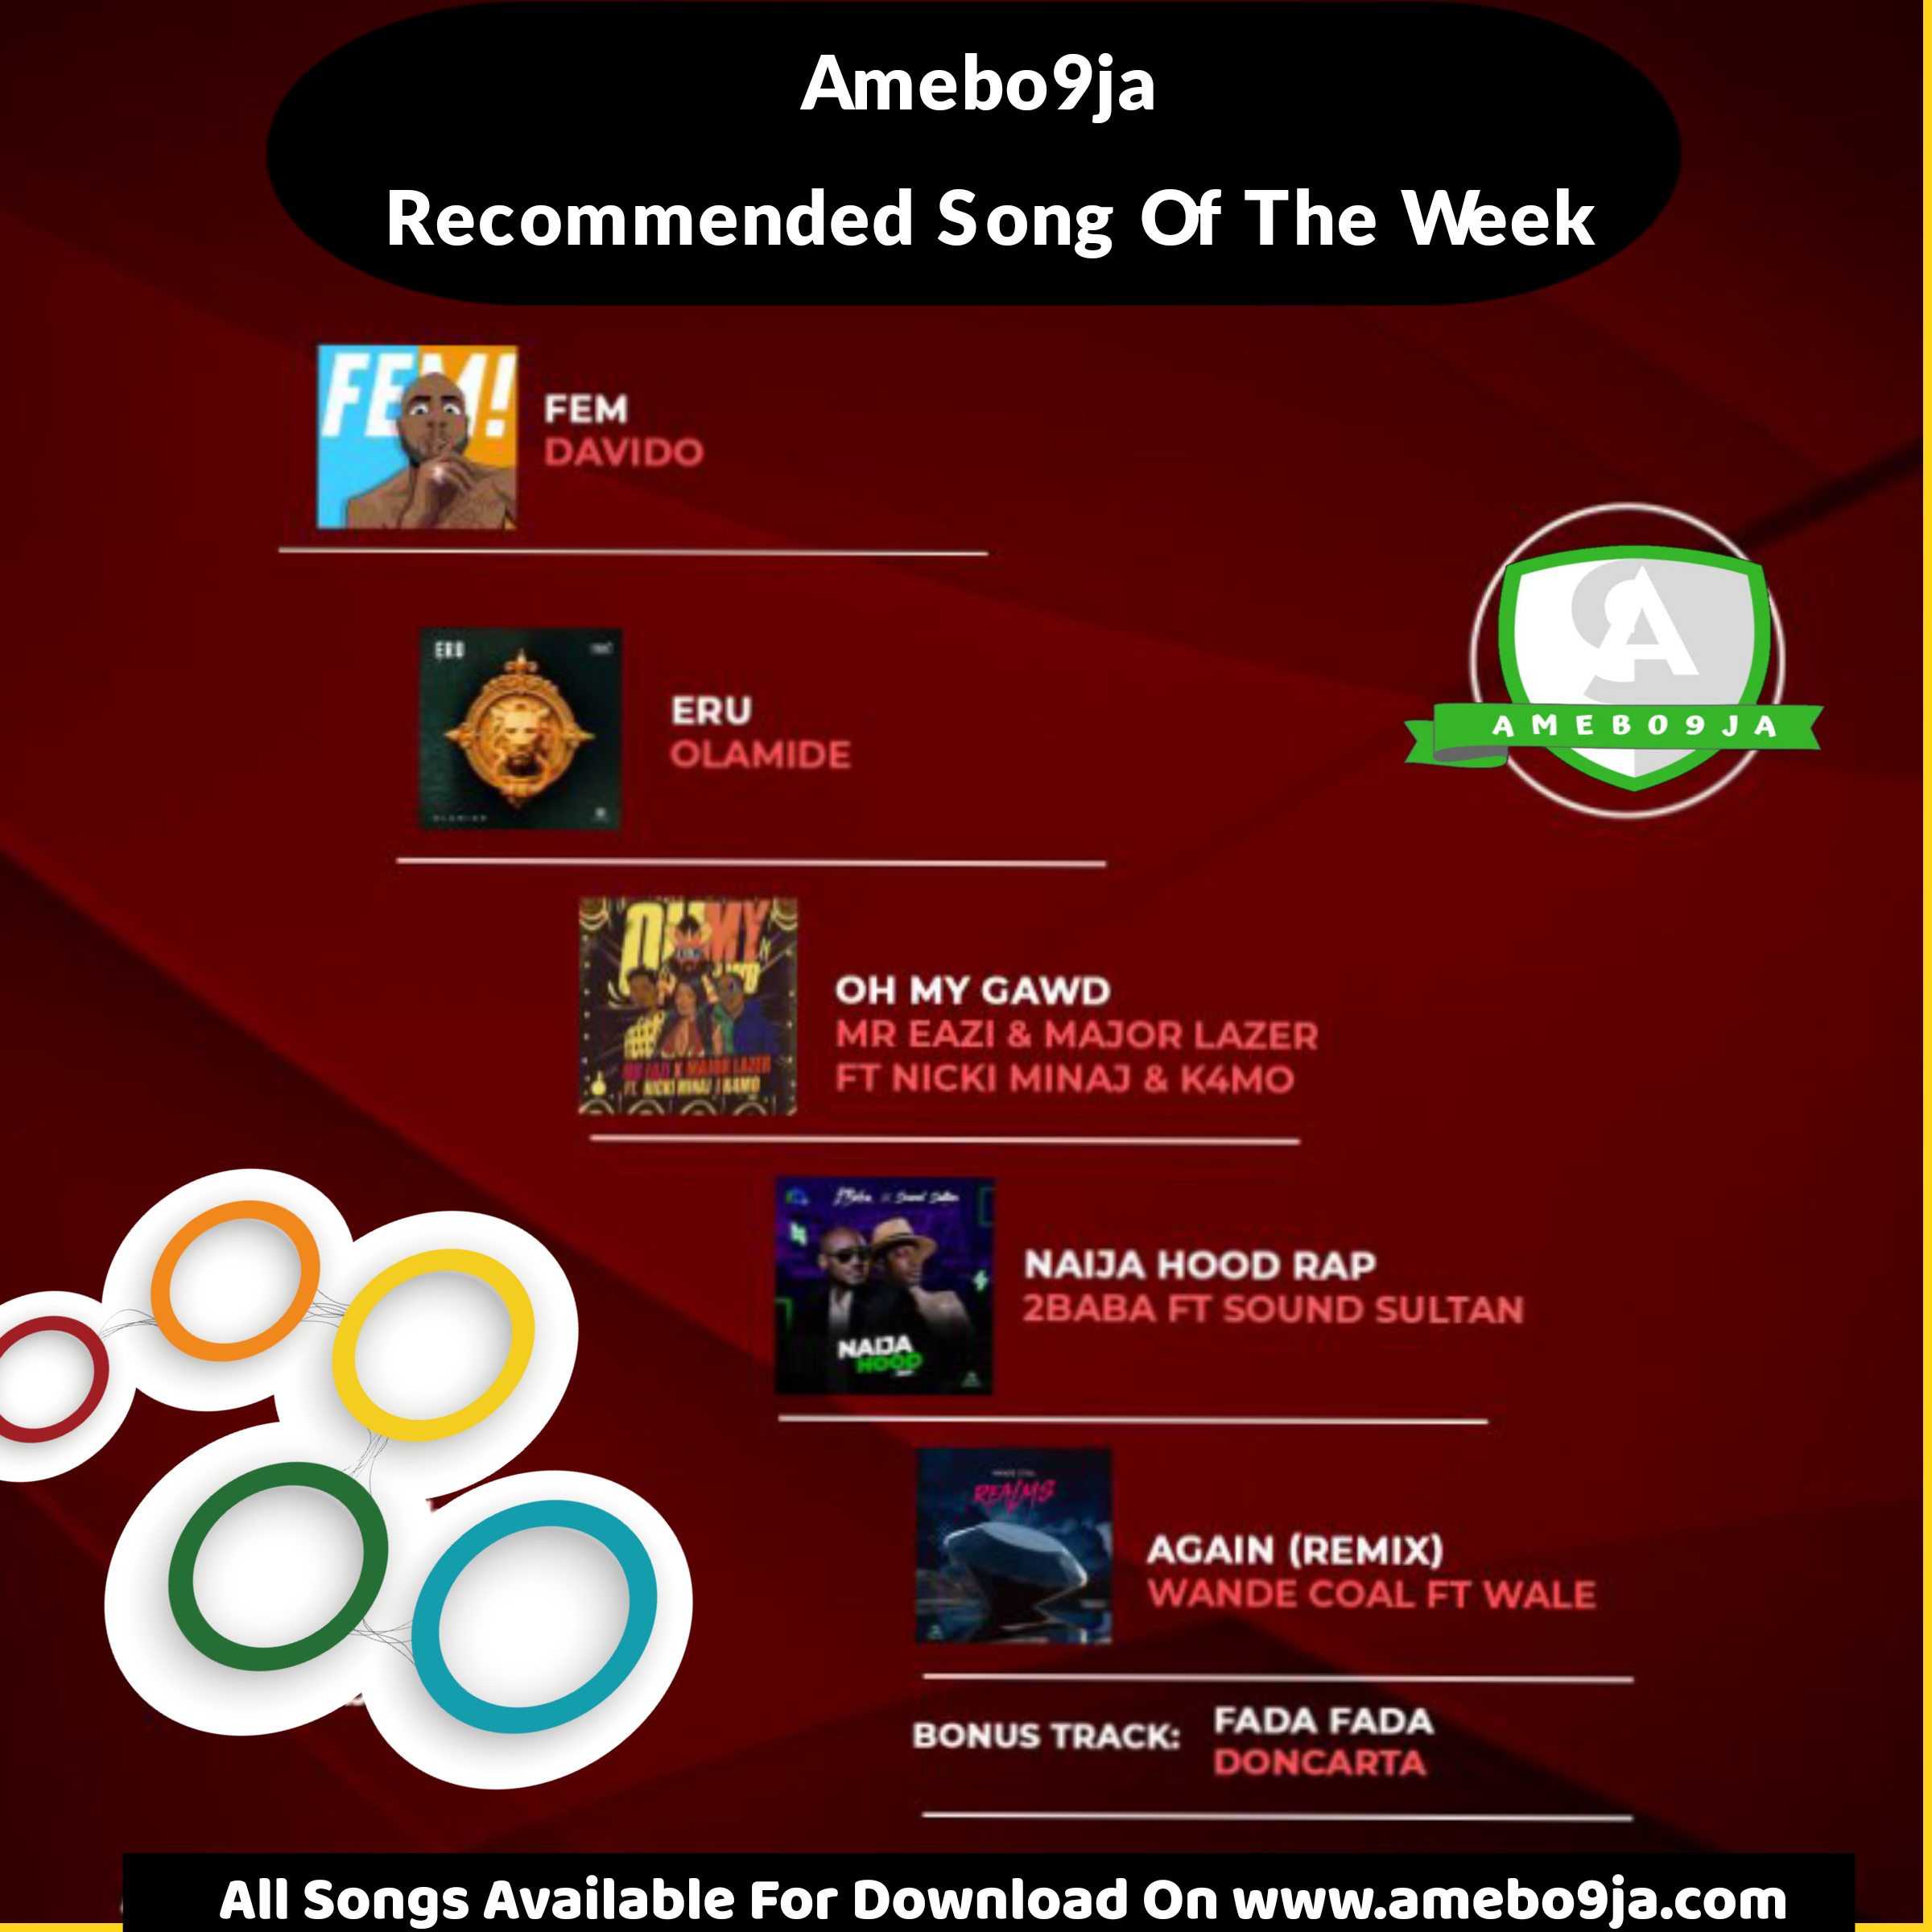 AMEBO9JA Recommended Songs For The Week